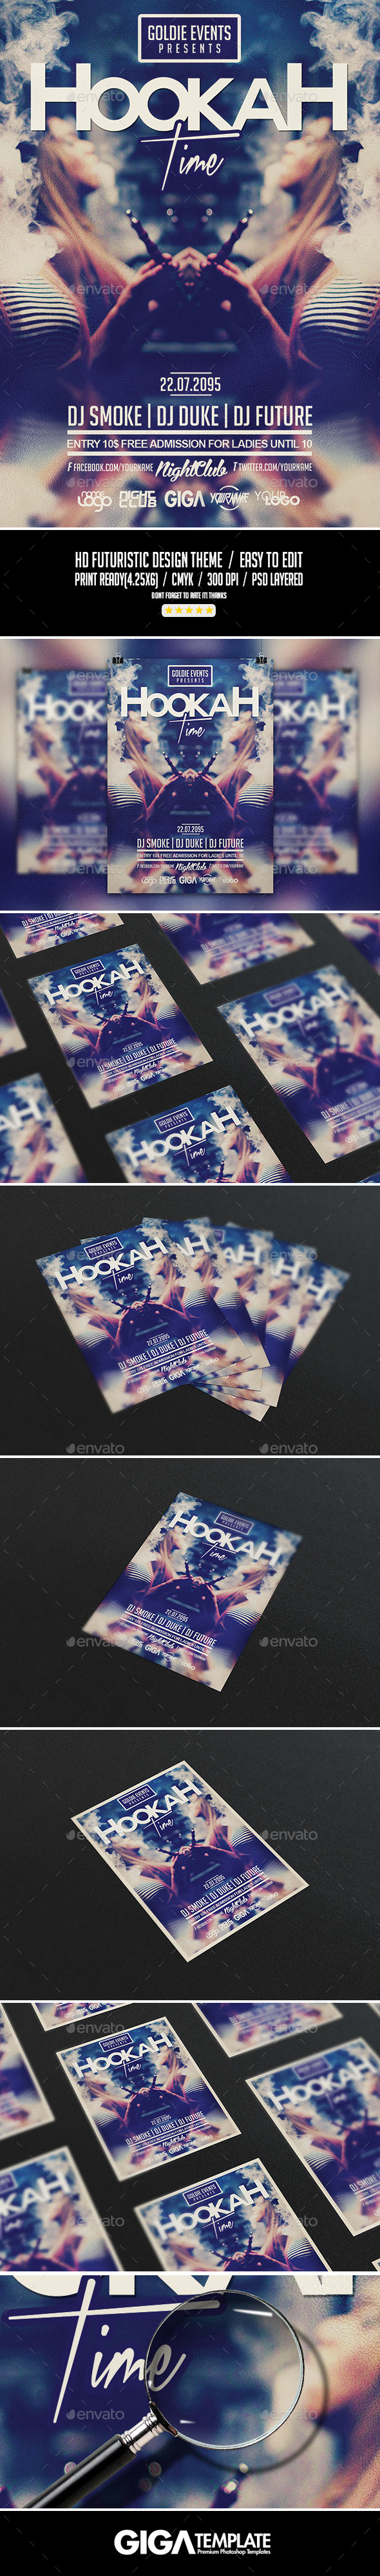 Hookah Time | Lifestyle Party PSD Flyer Template - Events Flyers